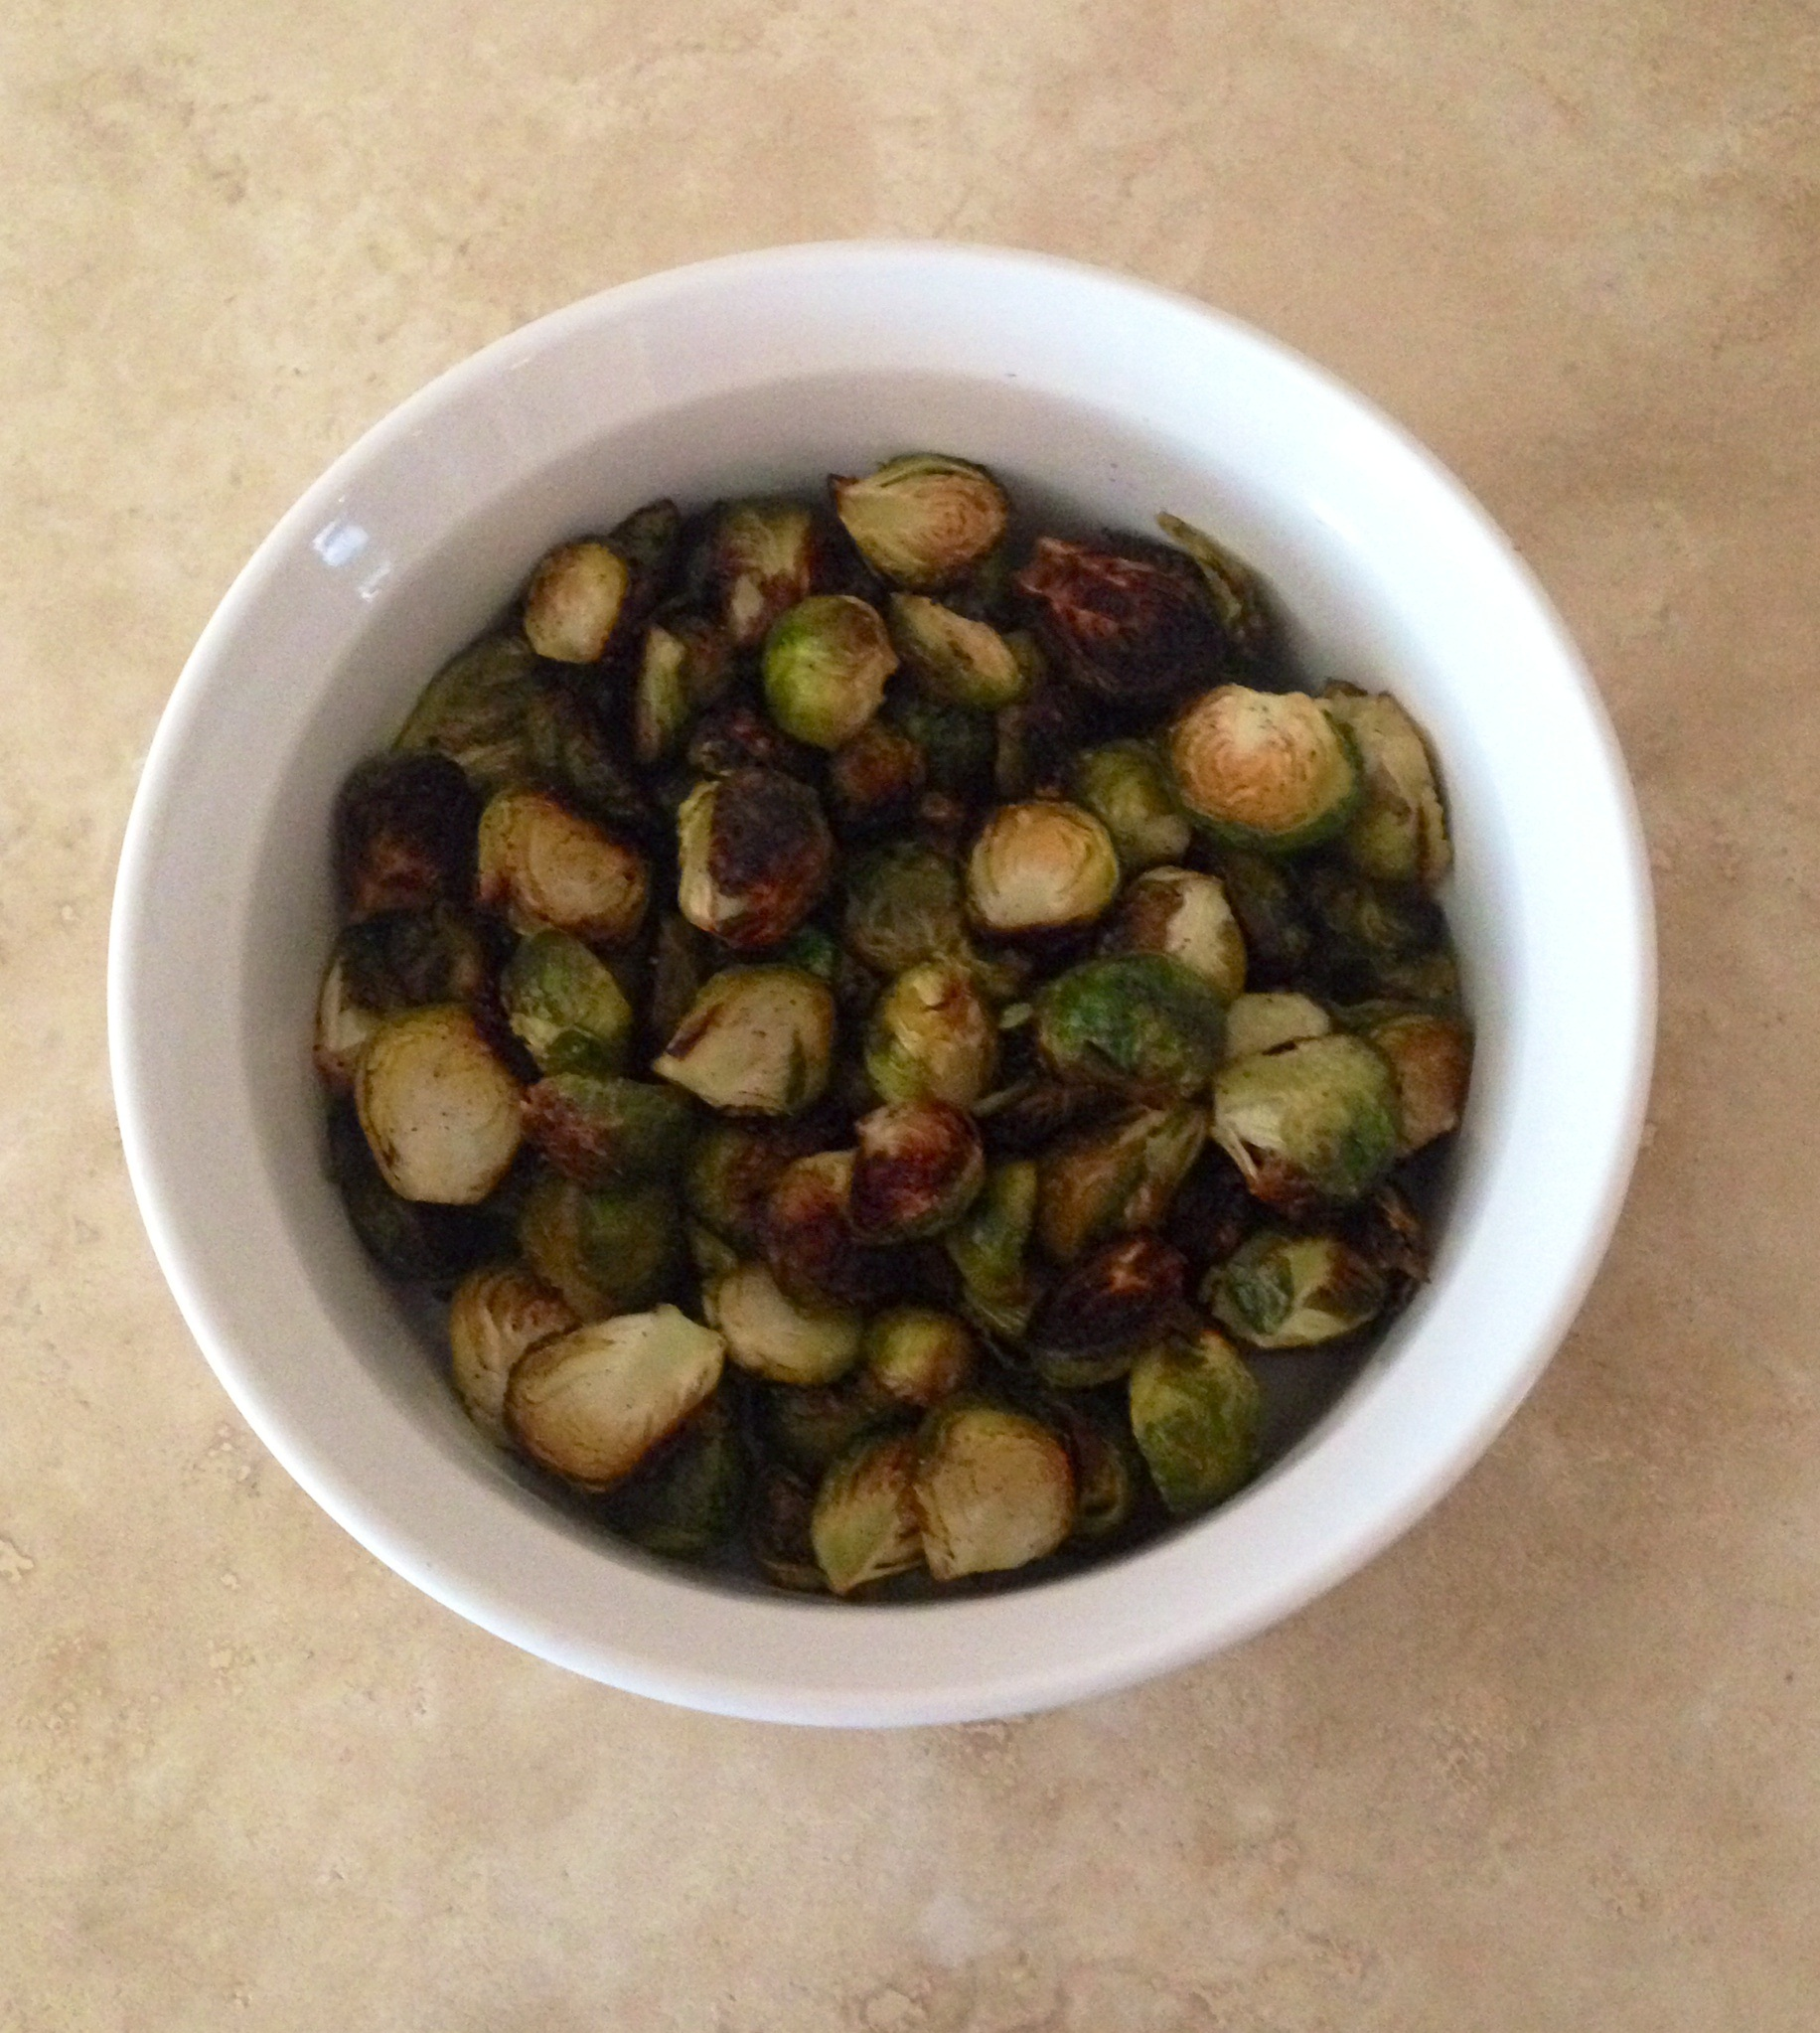 Paleo roasted brussels sprouts